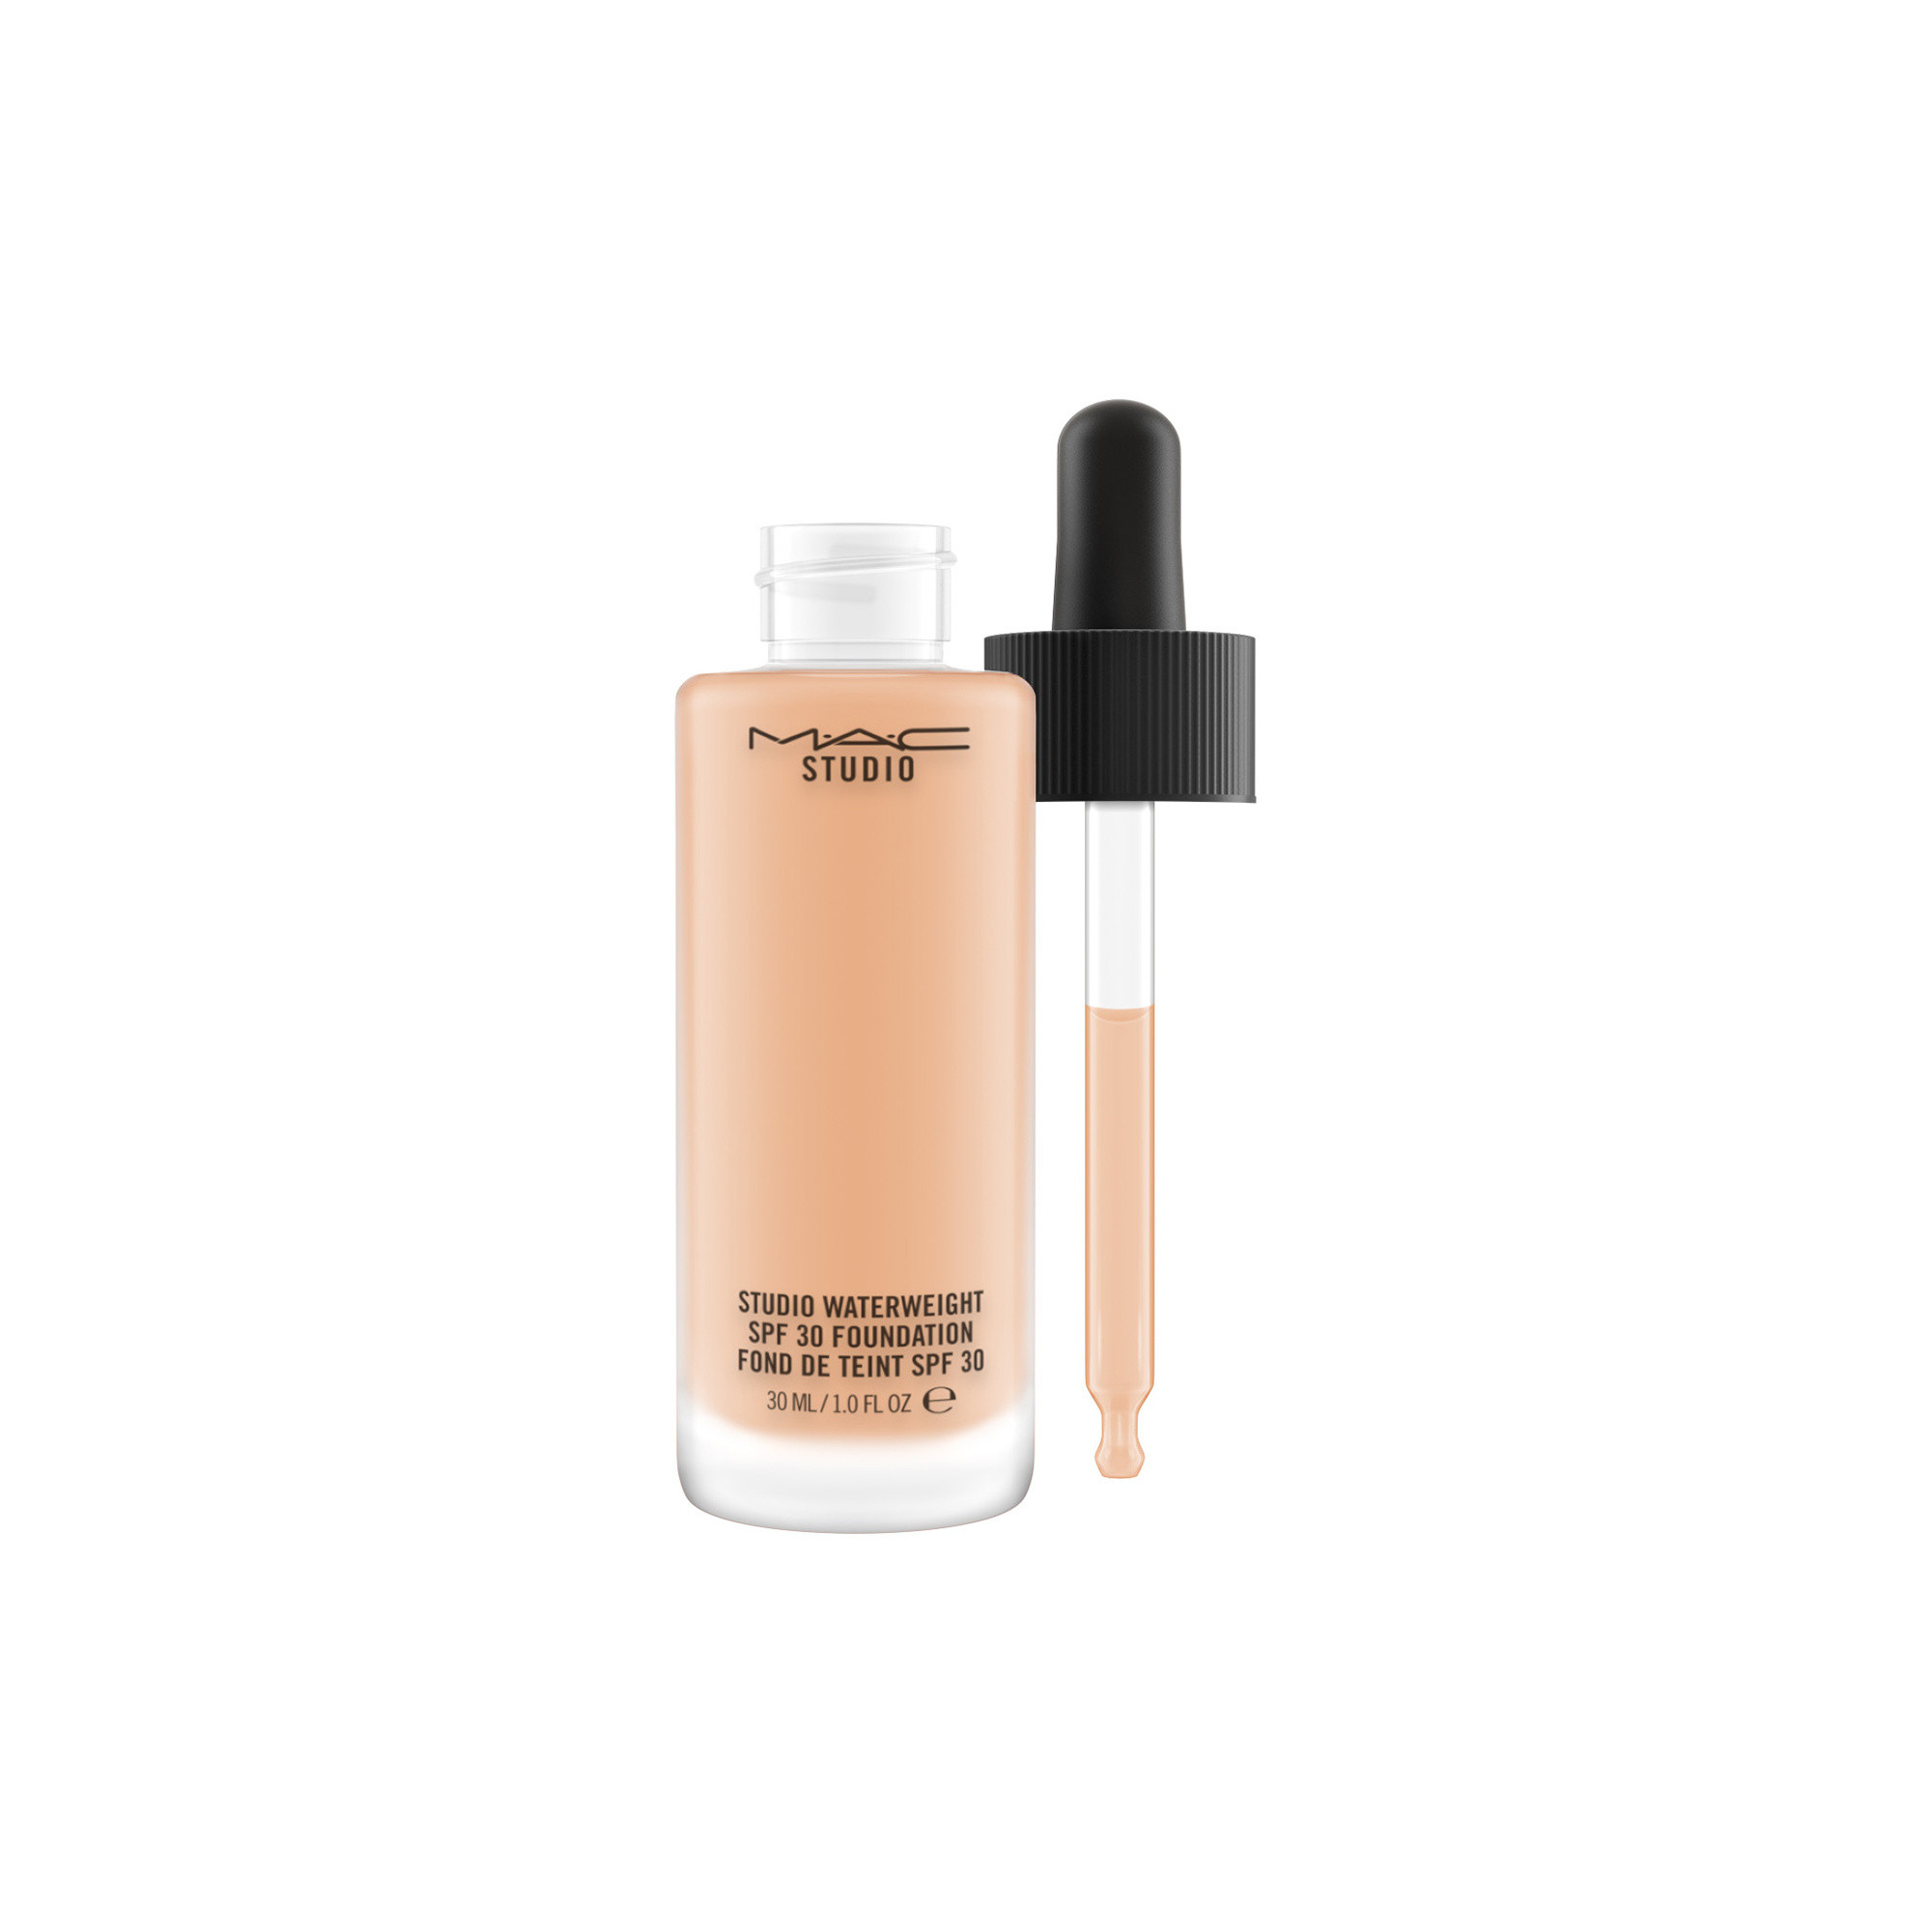 Studio Waterweight Foundation Spf30 - NC35, NC35, large image number 0